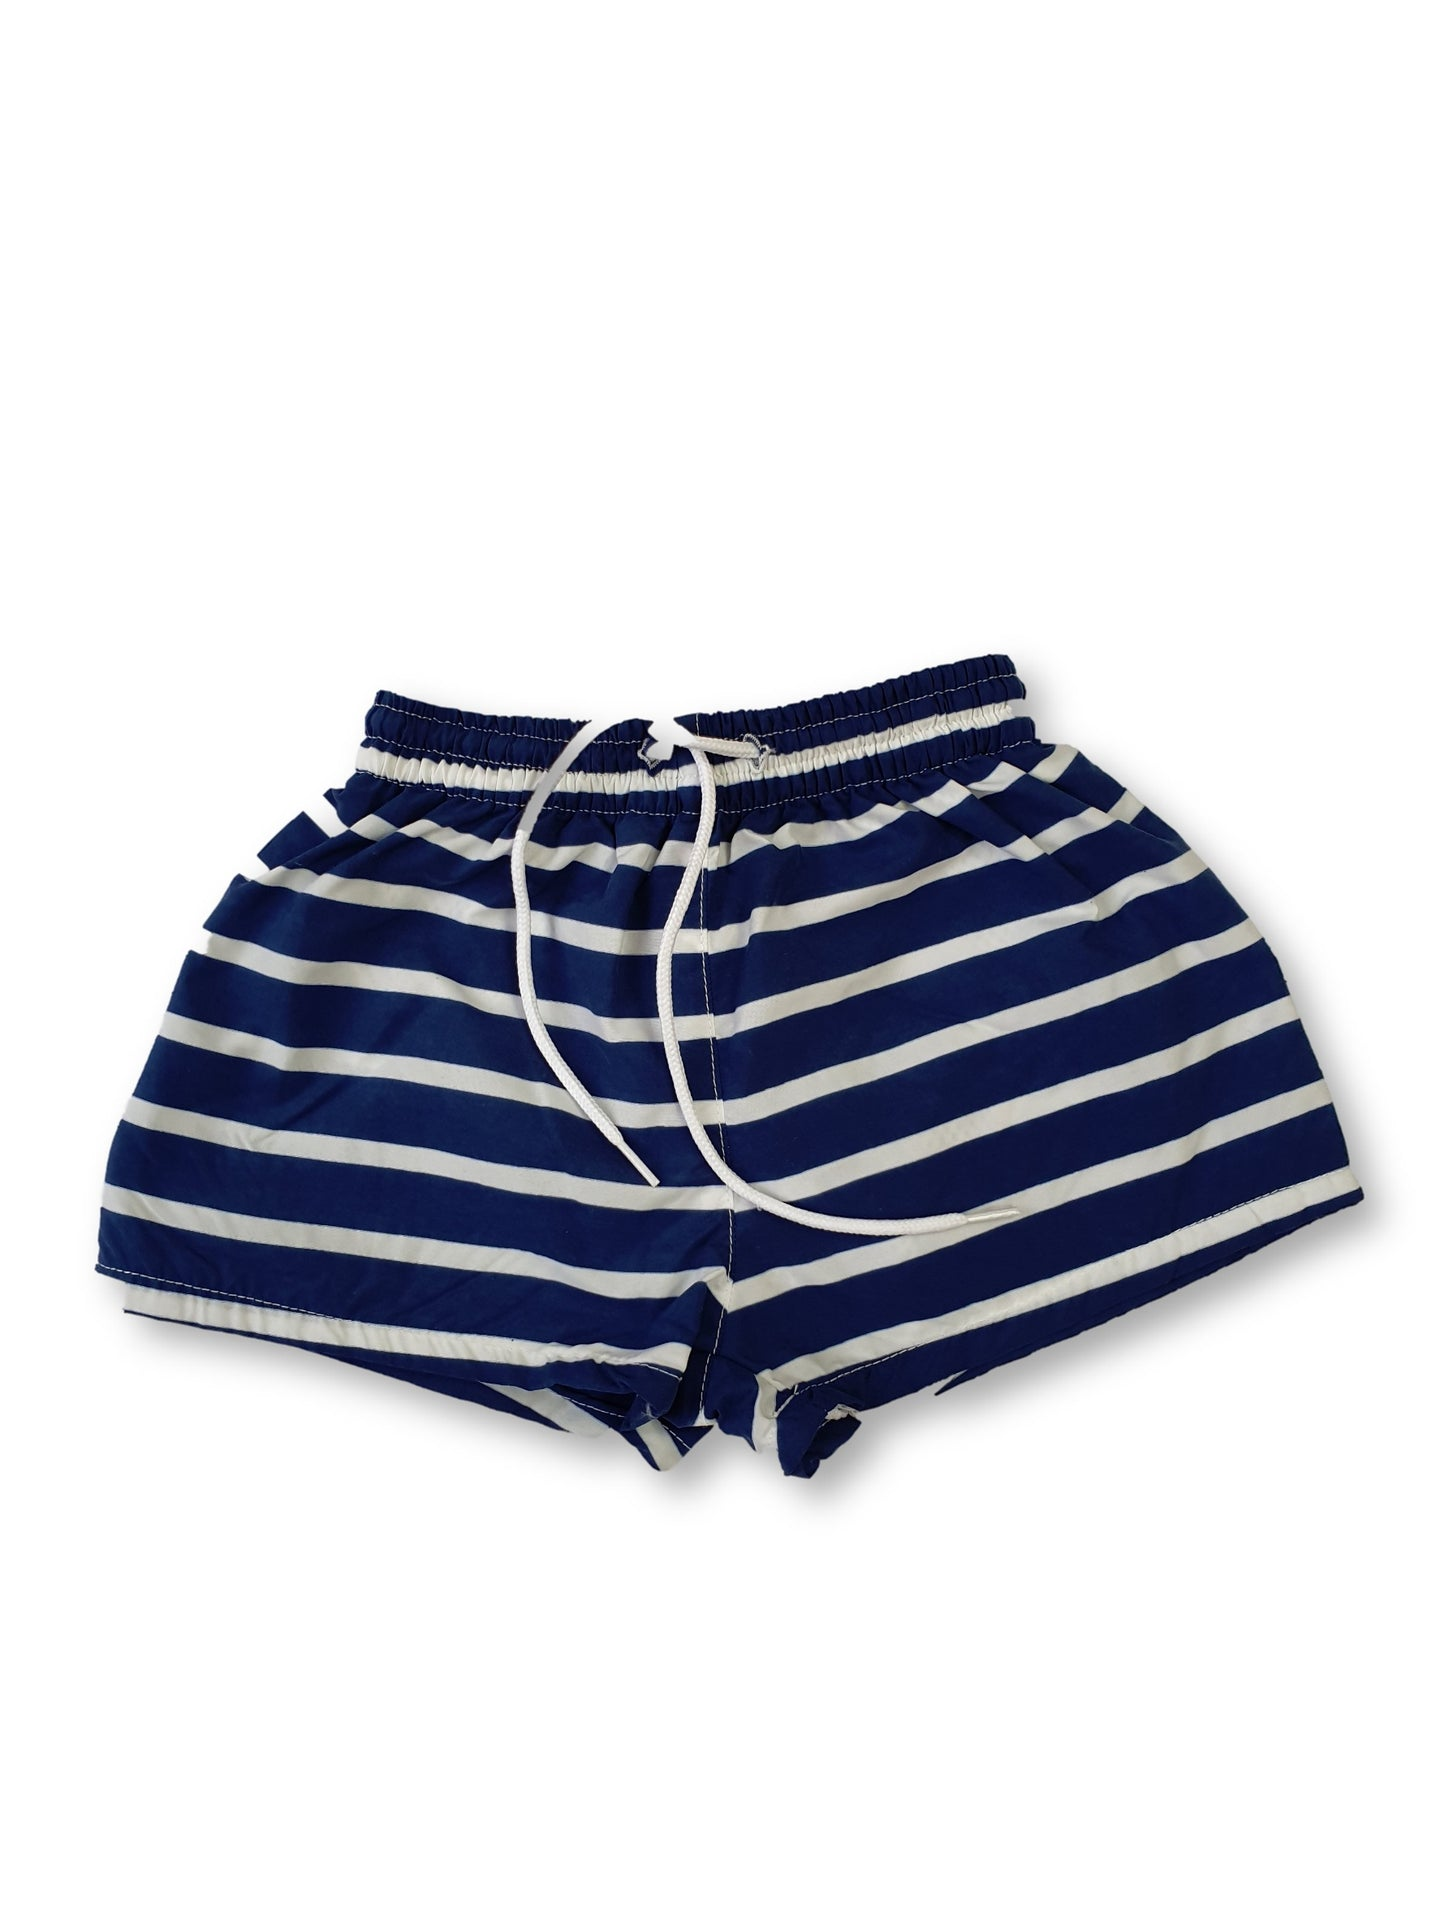 AMAIA outlet baby and boy swimsuit 2yo